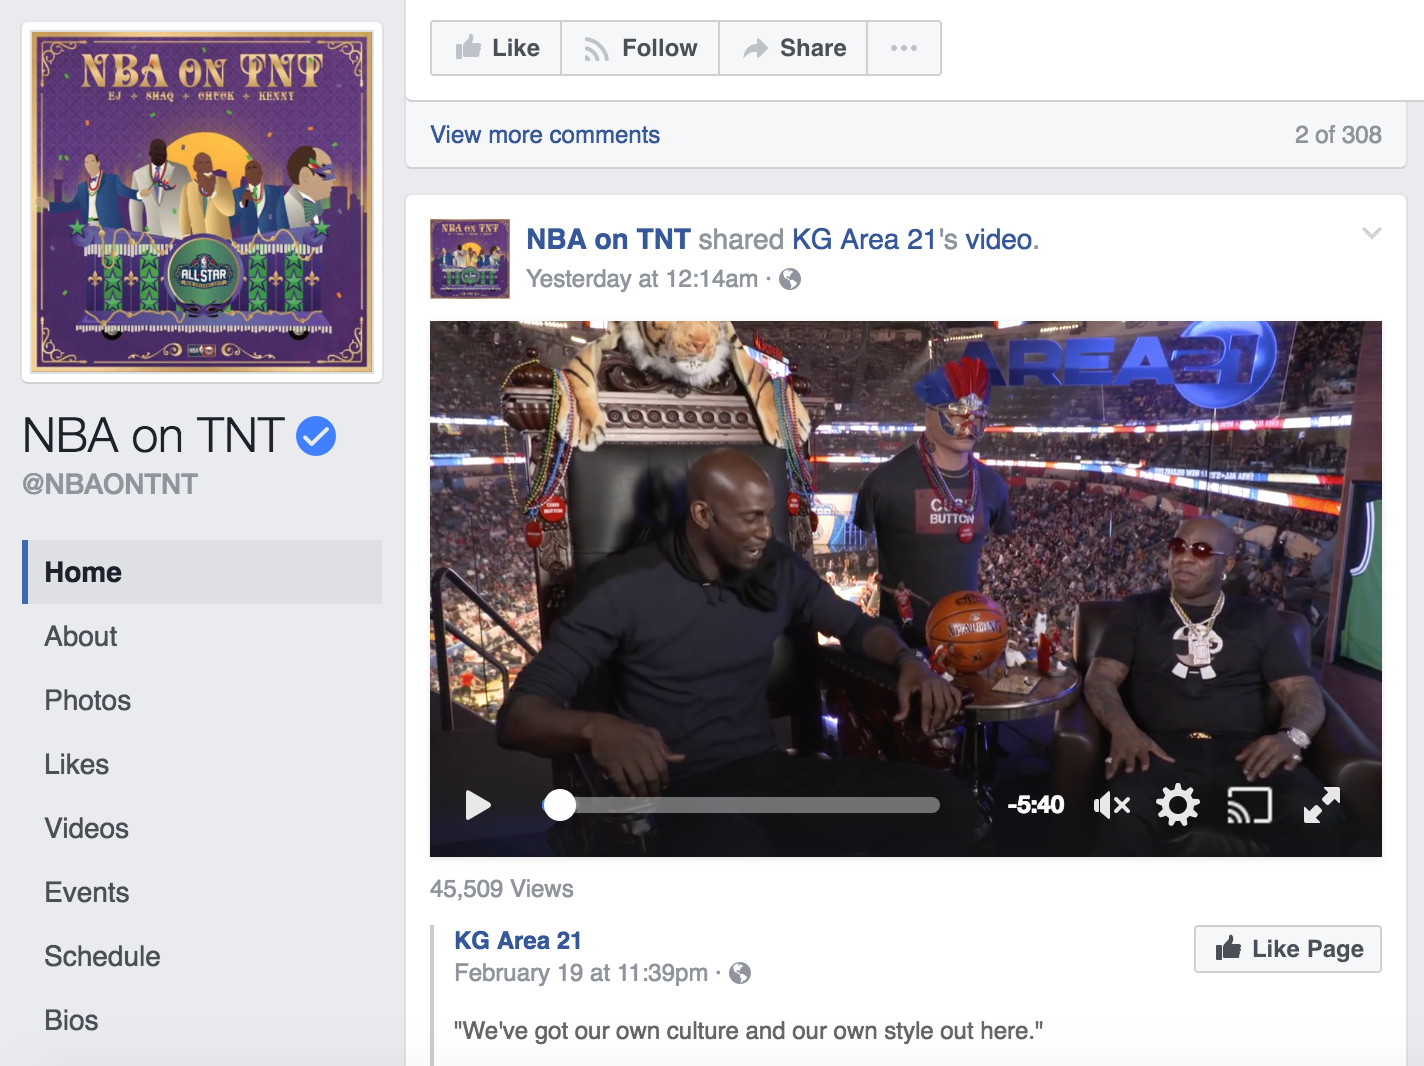 Turner Sports created a small studio area called Area 21 that was a home to some live social video content. Kevin Garnett hosted a Facebook Live from the location during the Slam Dunk Contest. The show was meant to serve as a second-screen complement to the linear television production.